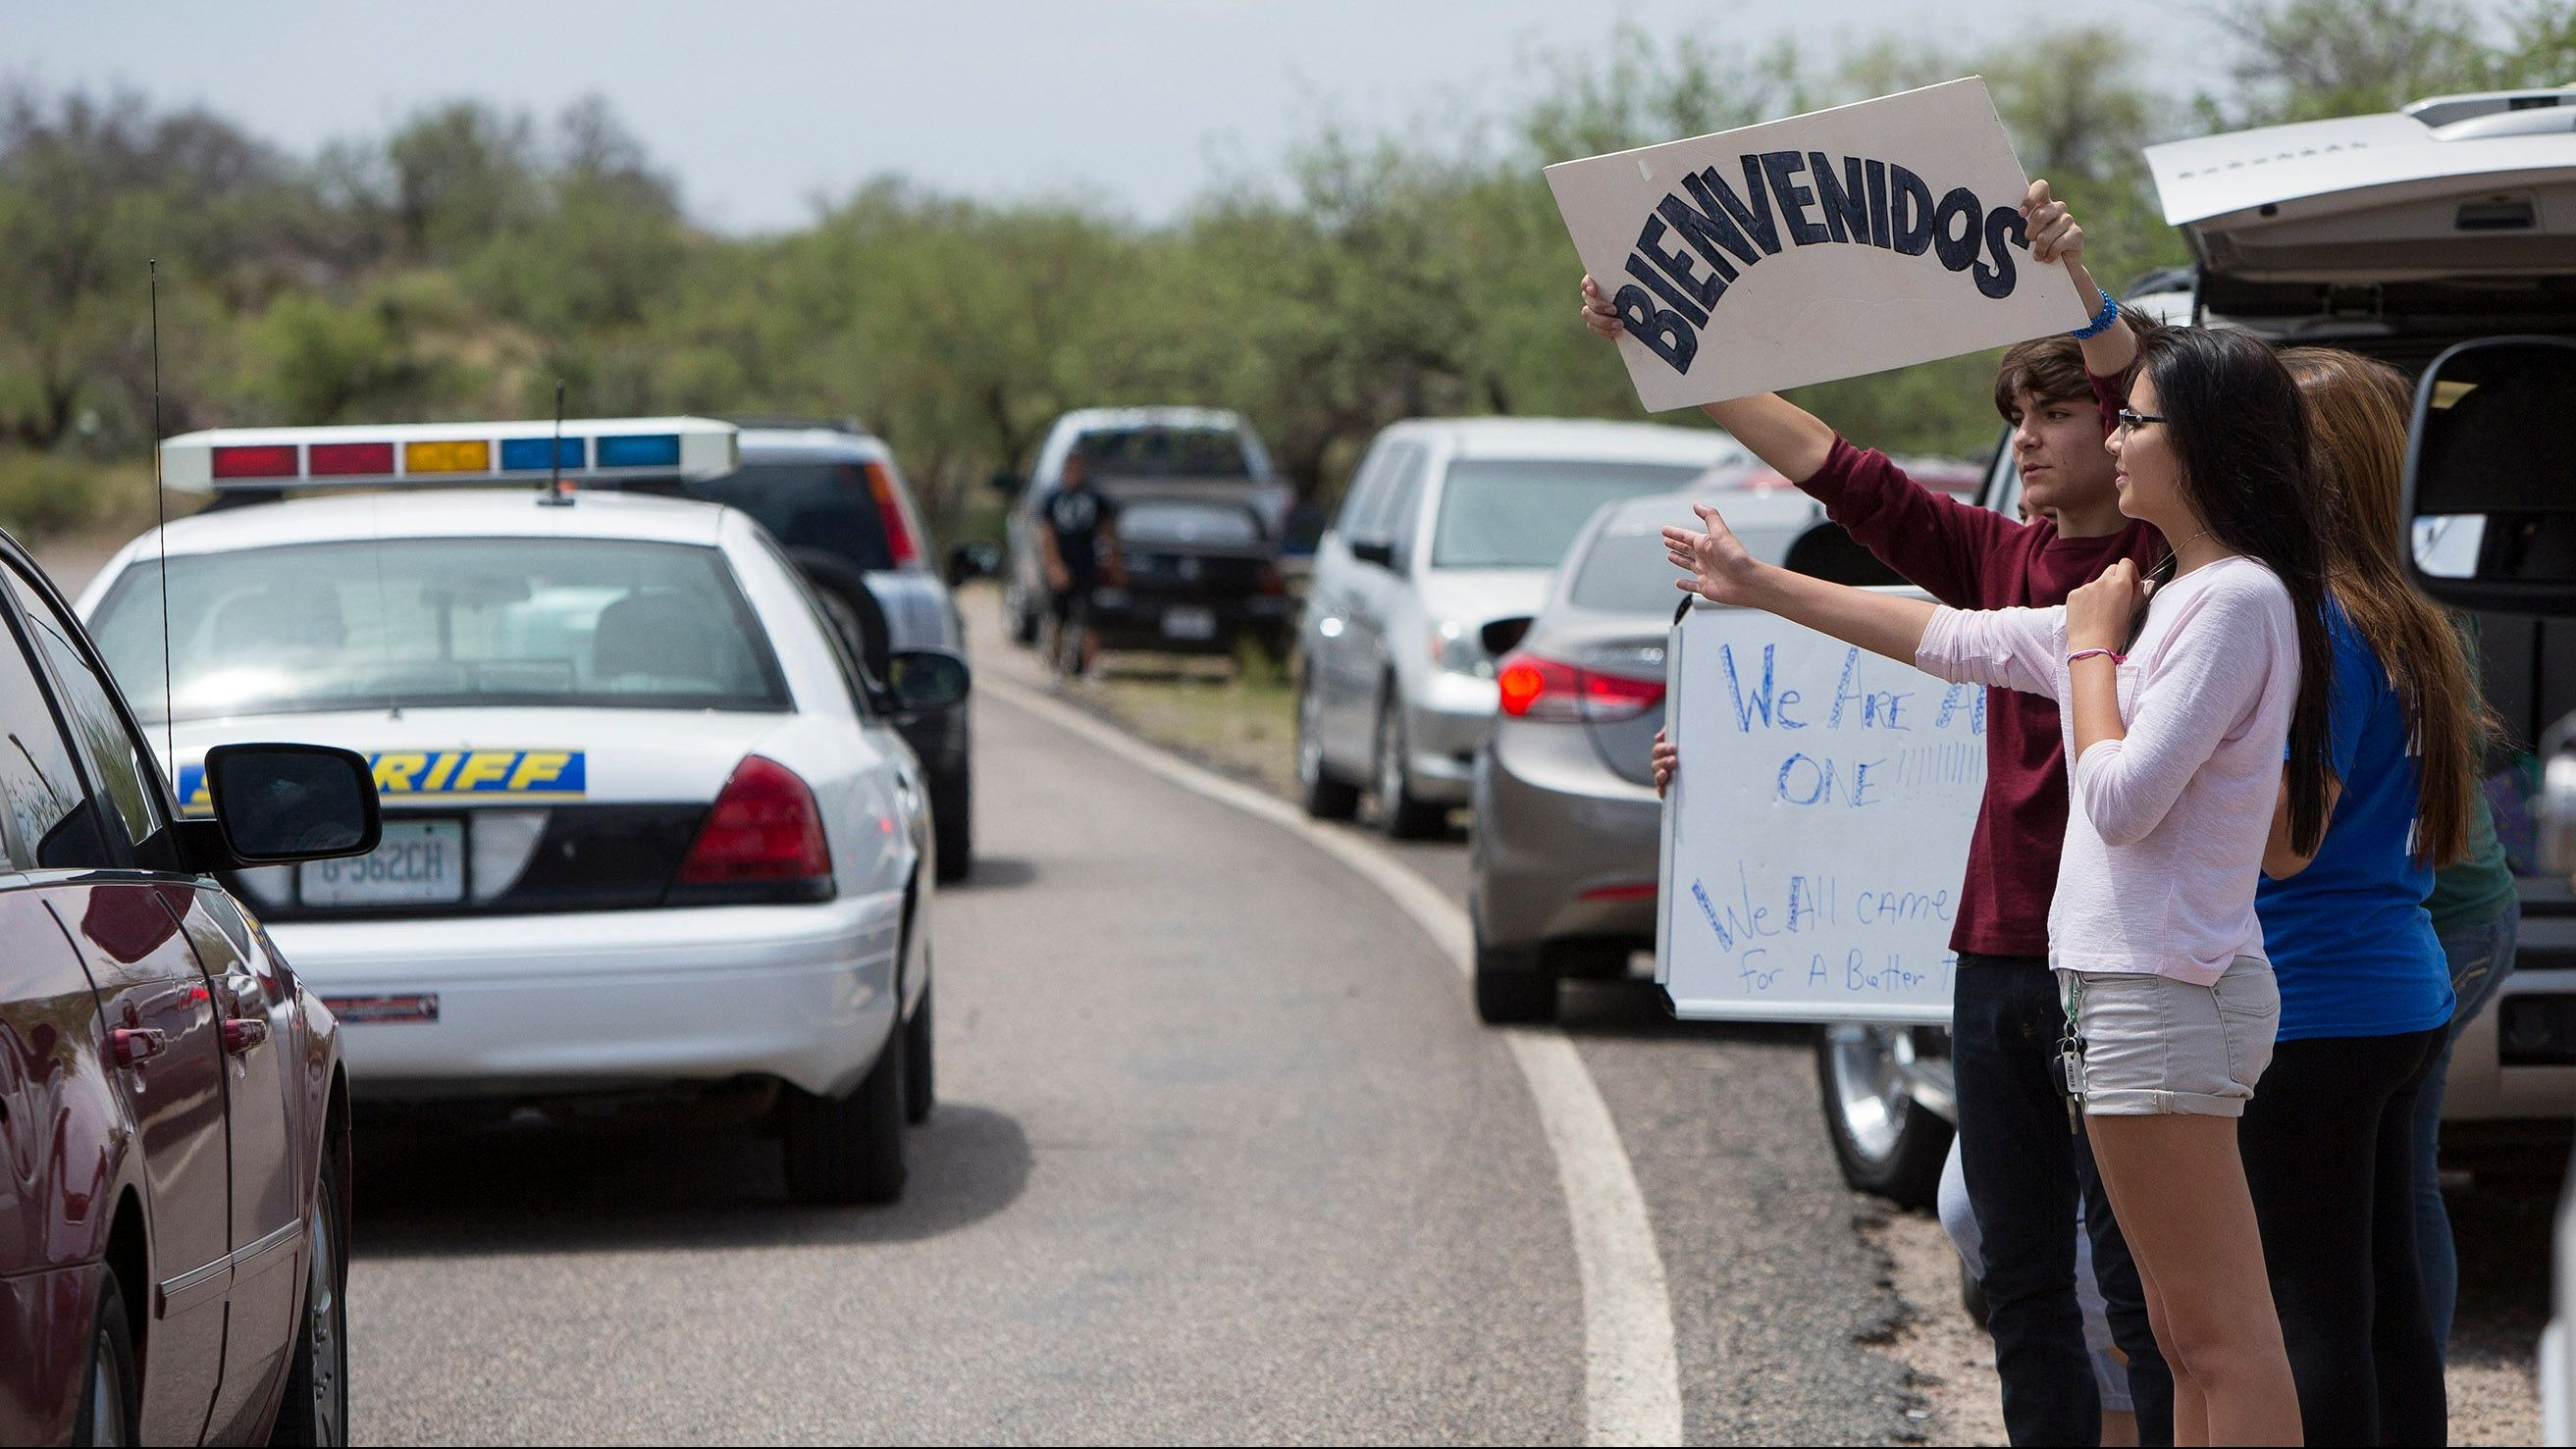 "Marcus Martinez of Oracle, Arizona, holds up a sign in Spanish that reads ""Welcome"" as he and other members of his family watch as vehicles leave a demonstration against the arrival of undocumented immigrants in Oracle, Arizona July 15, 2014. In a scene reminiscent of similar protests in California, about 65 demonstrators gathered at a fork in the road near the small town of Oracle to complain that the federal government's response to a surge of new arrivals from Central America was putting their communities at risk."